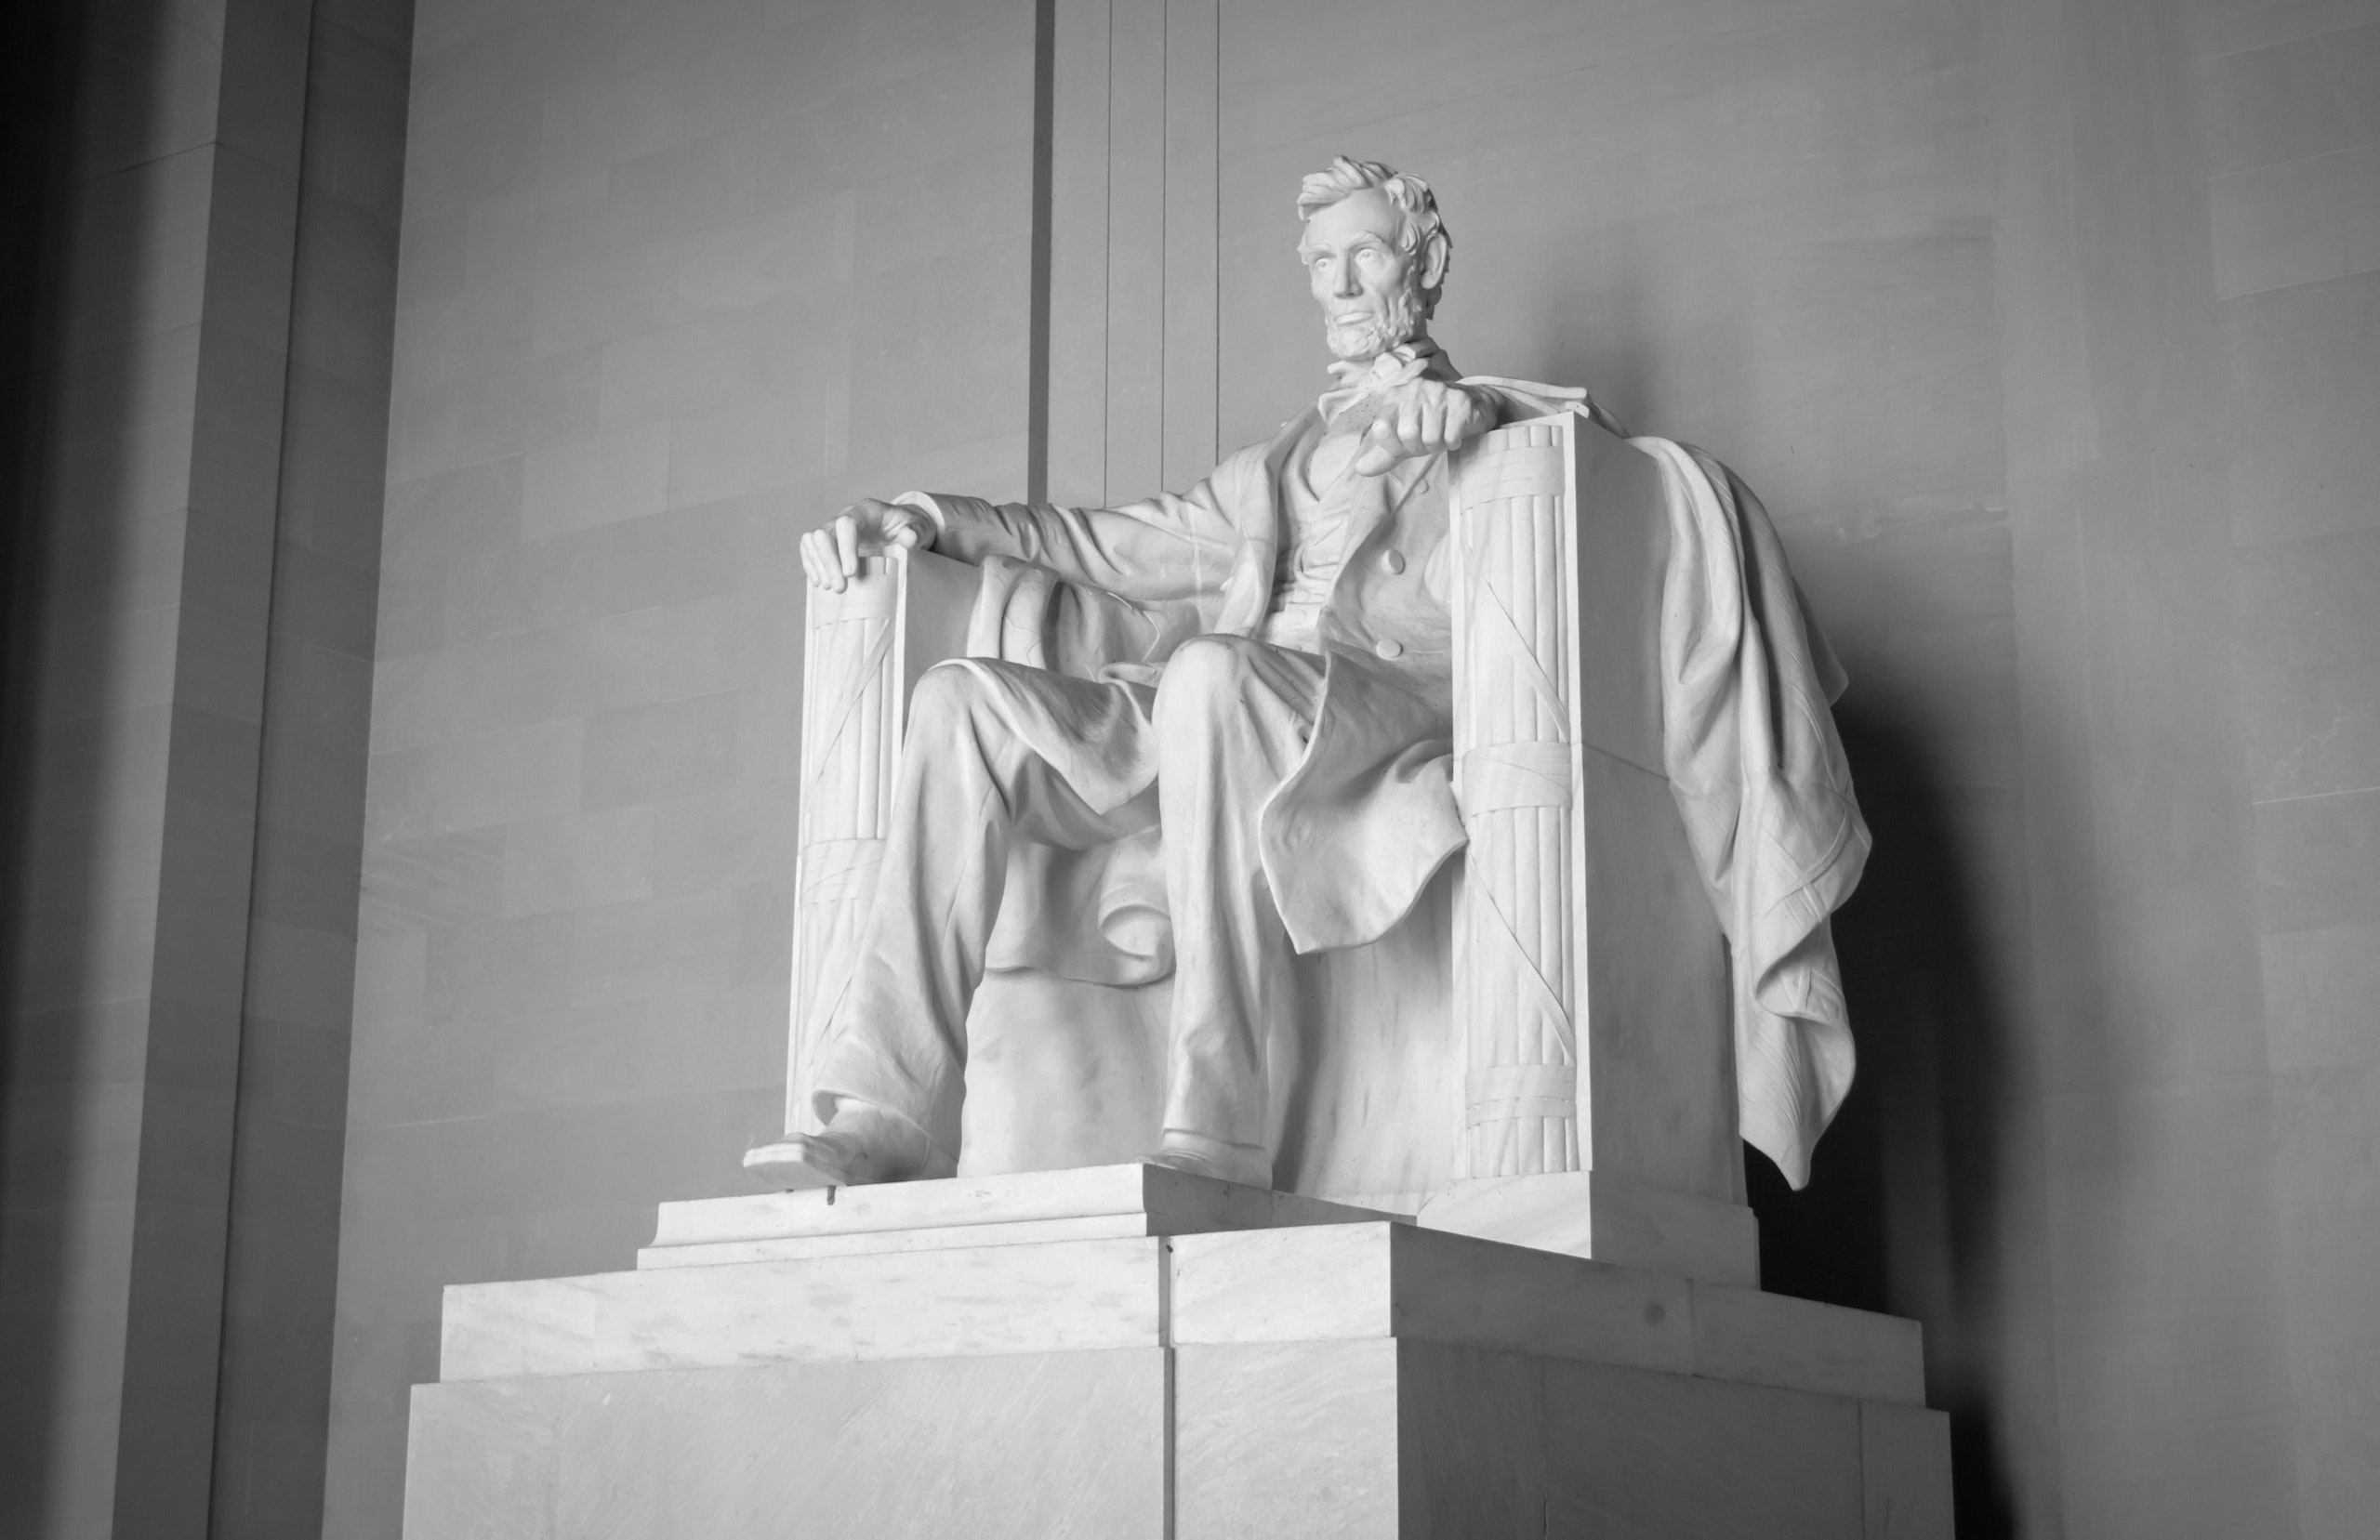 Abraham Lincoln and John F. Kennedy: Evidence of Reincarnation Through Coincidence and Synchronicity